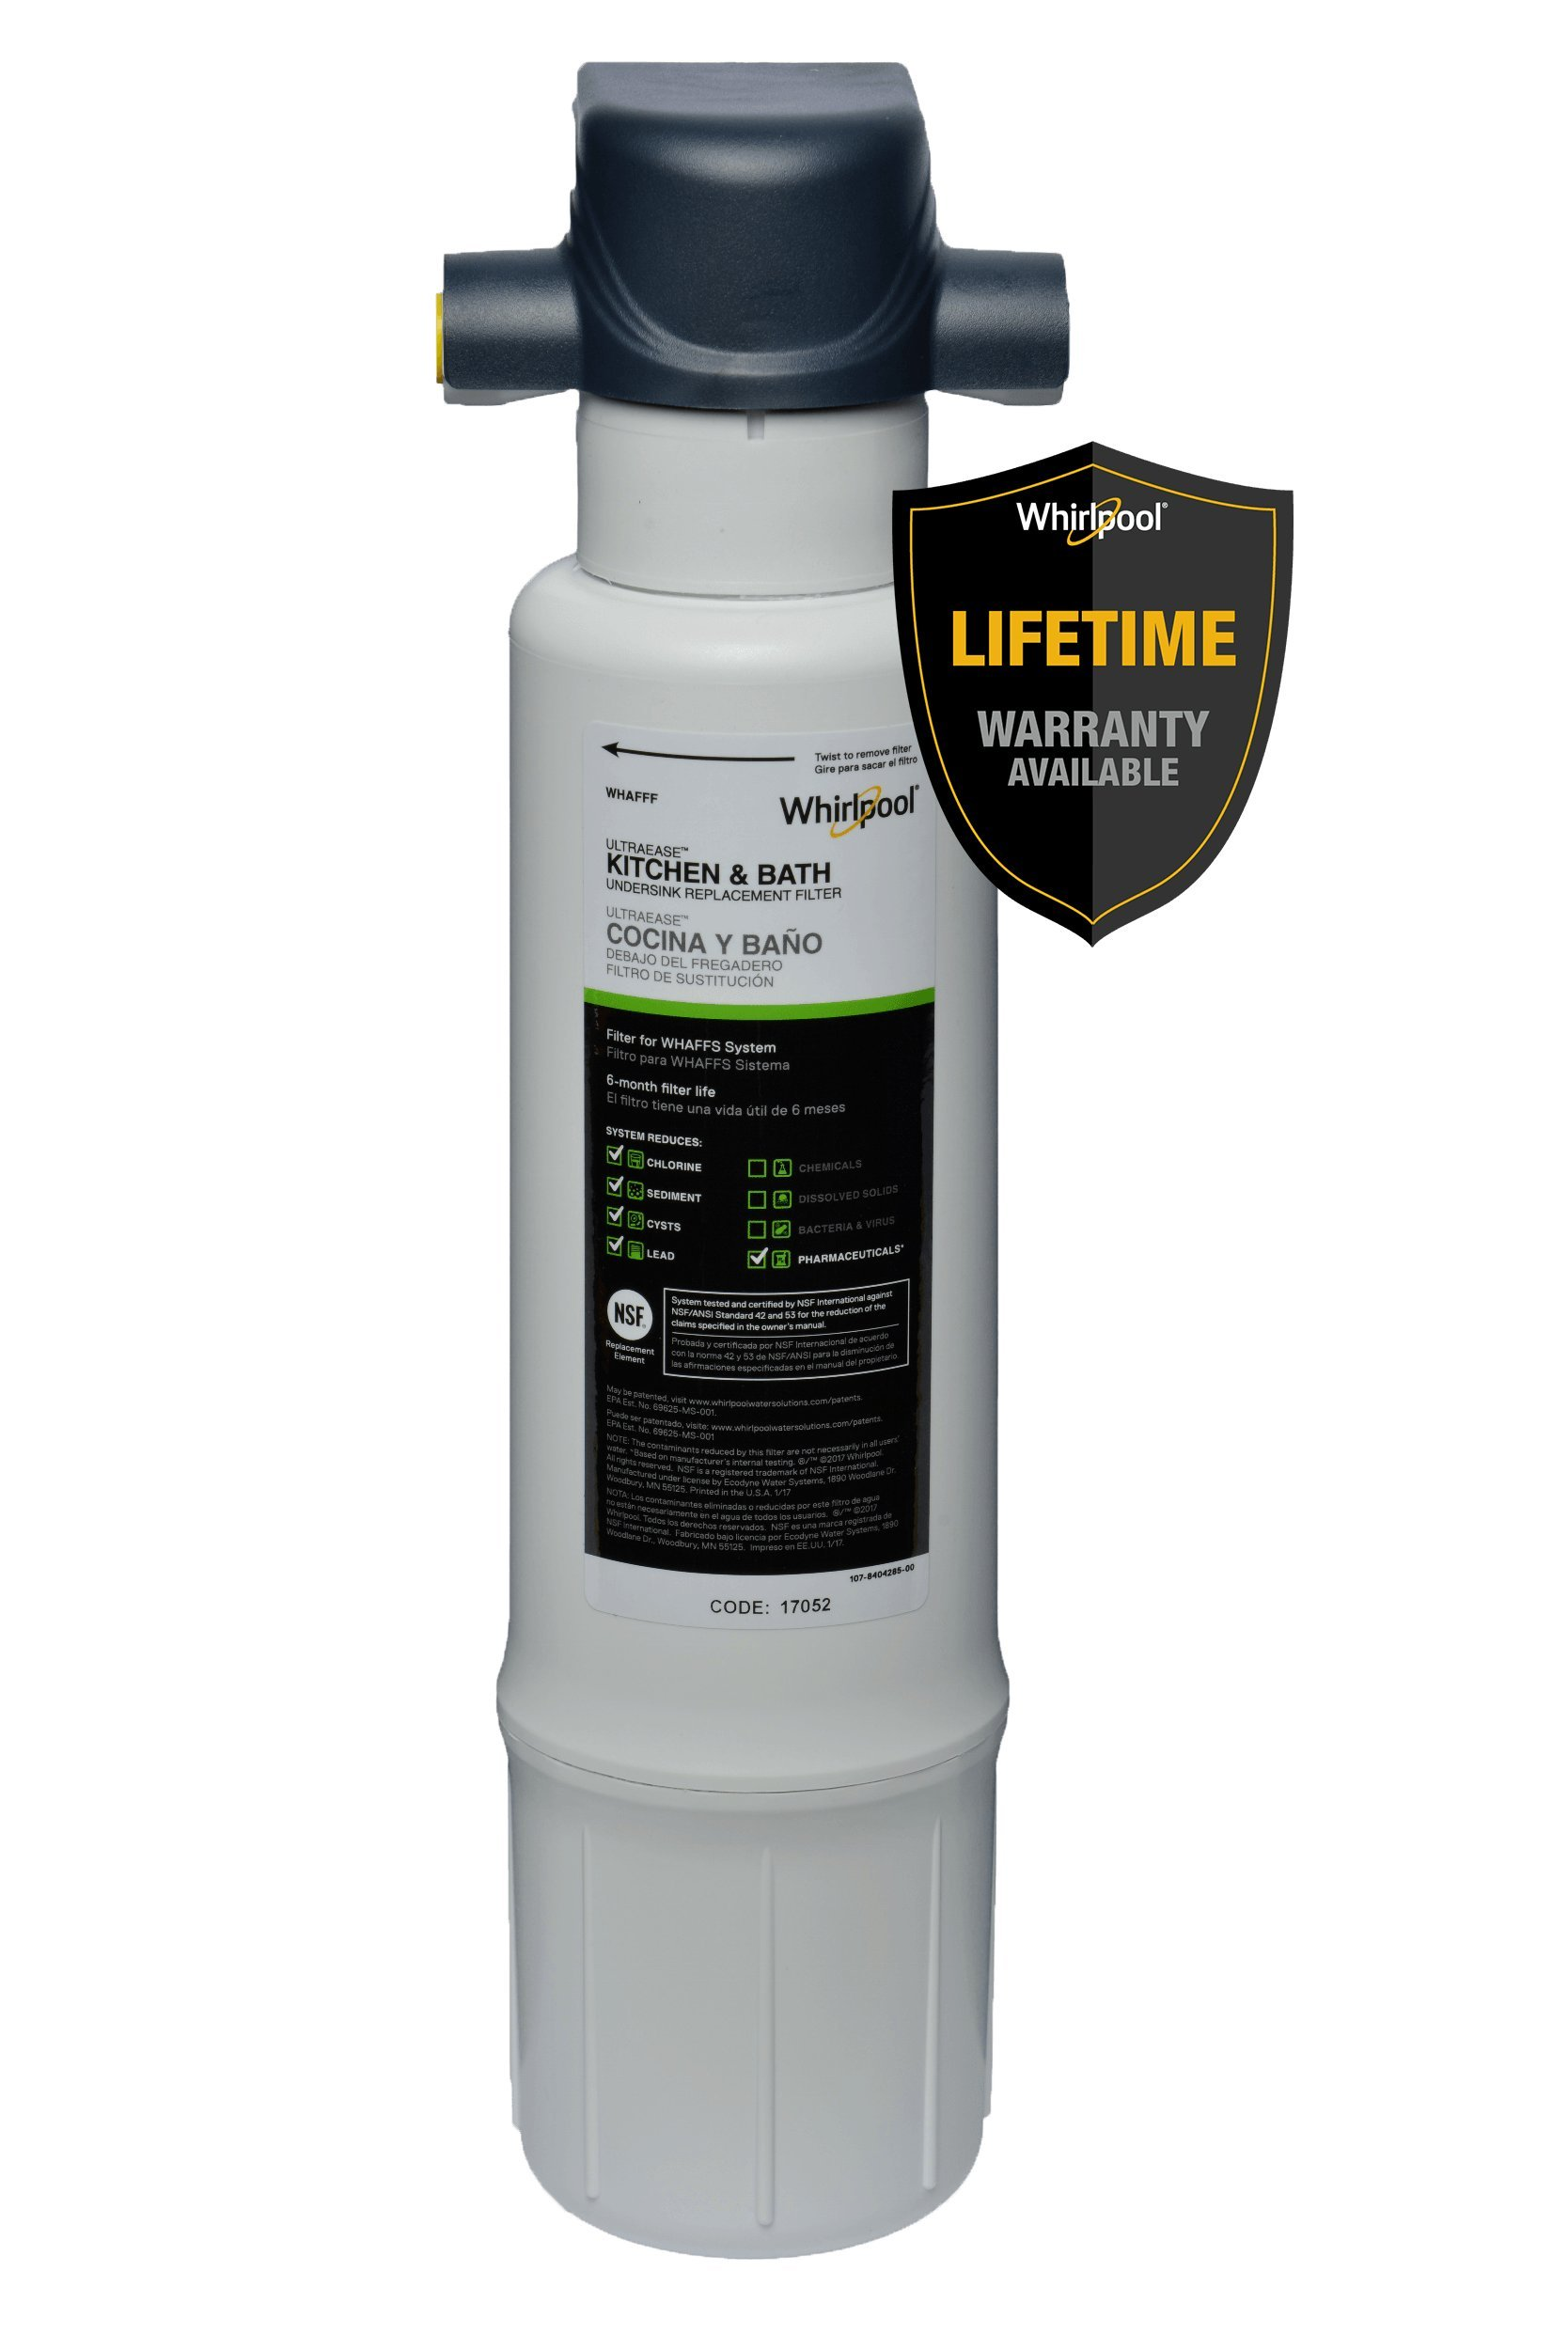 Whirlpool WHAFFS Kitchen and Bathroom Under Sink Water Filtration System, Blue by Whirlpool